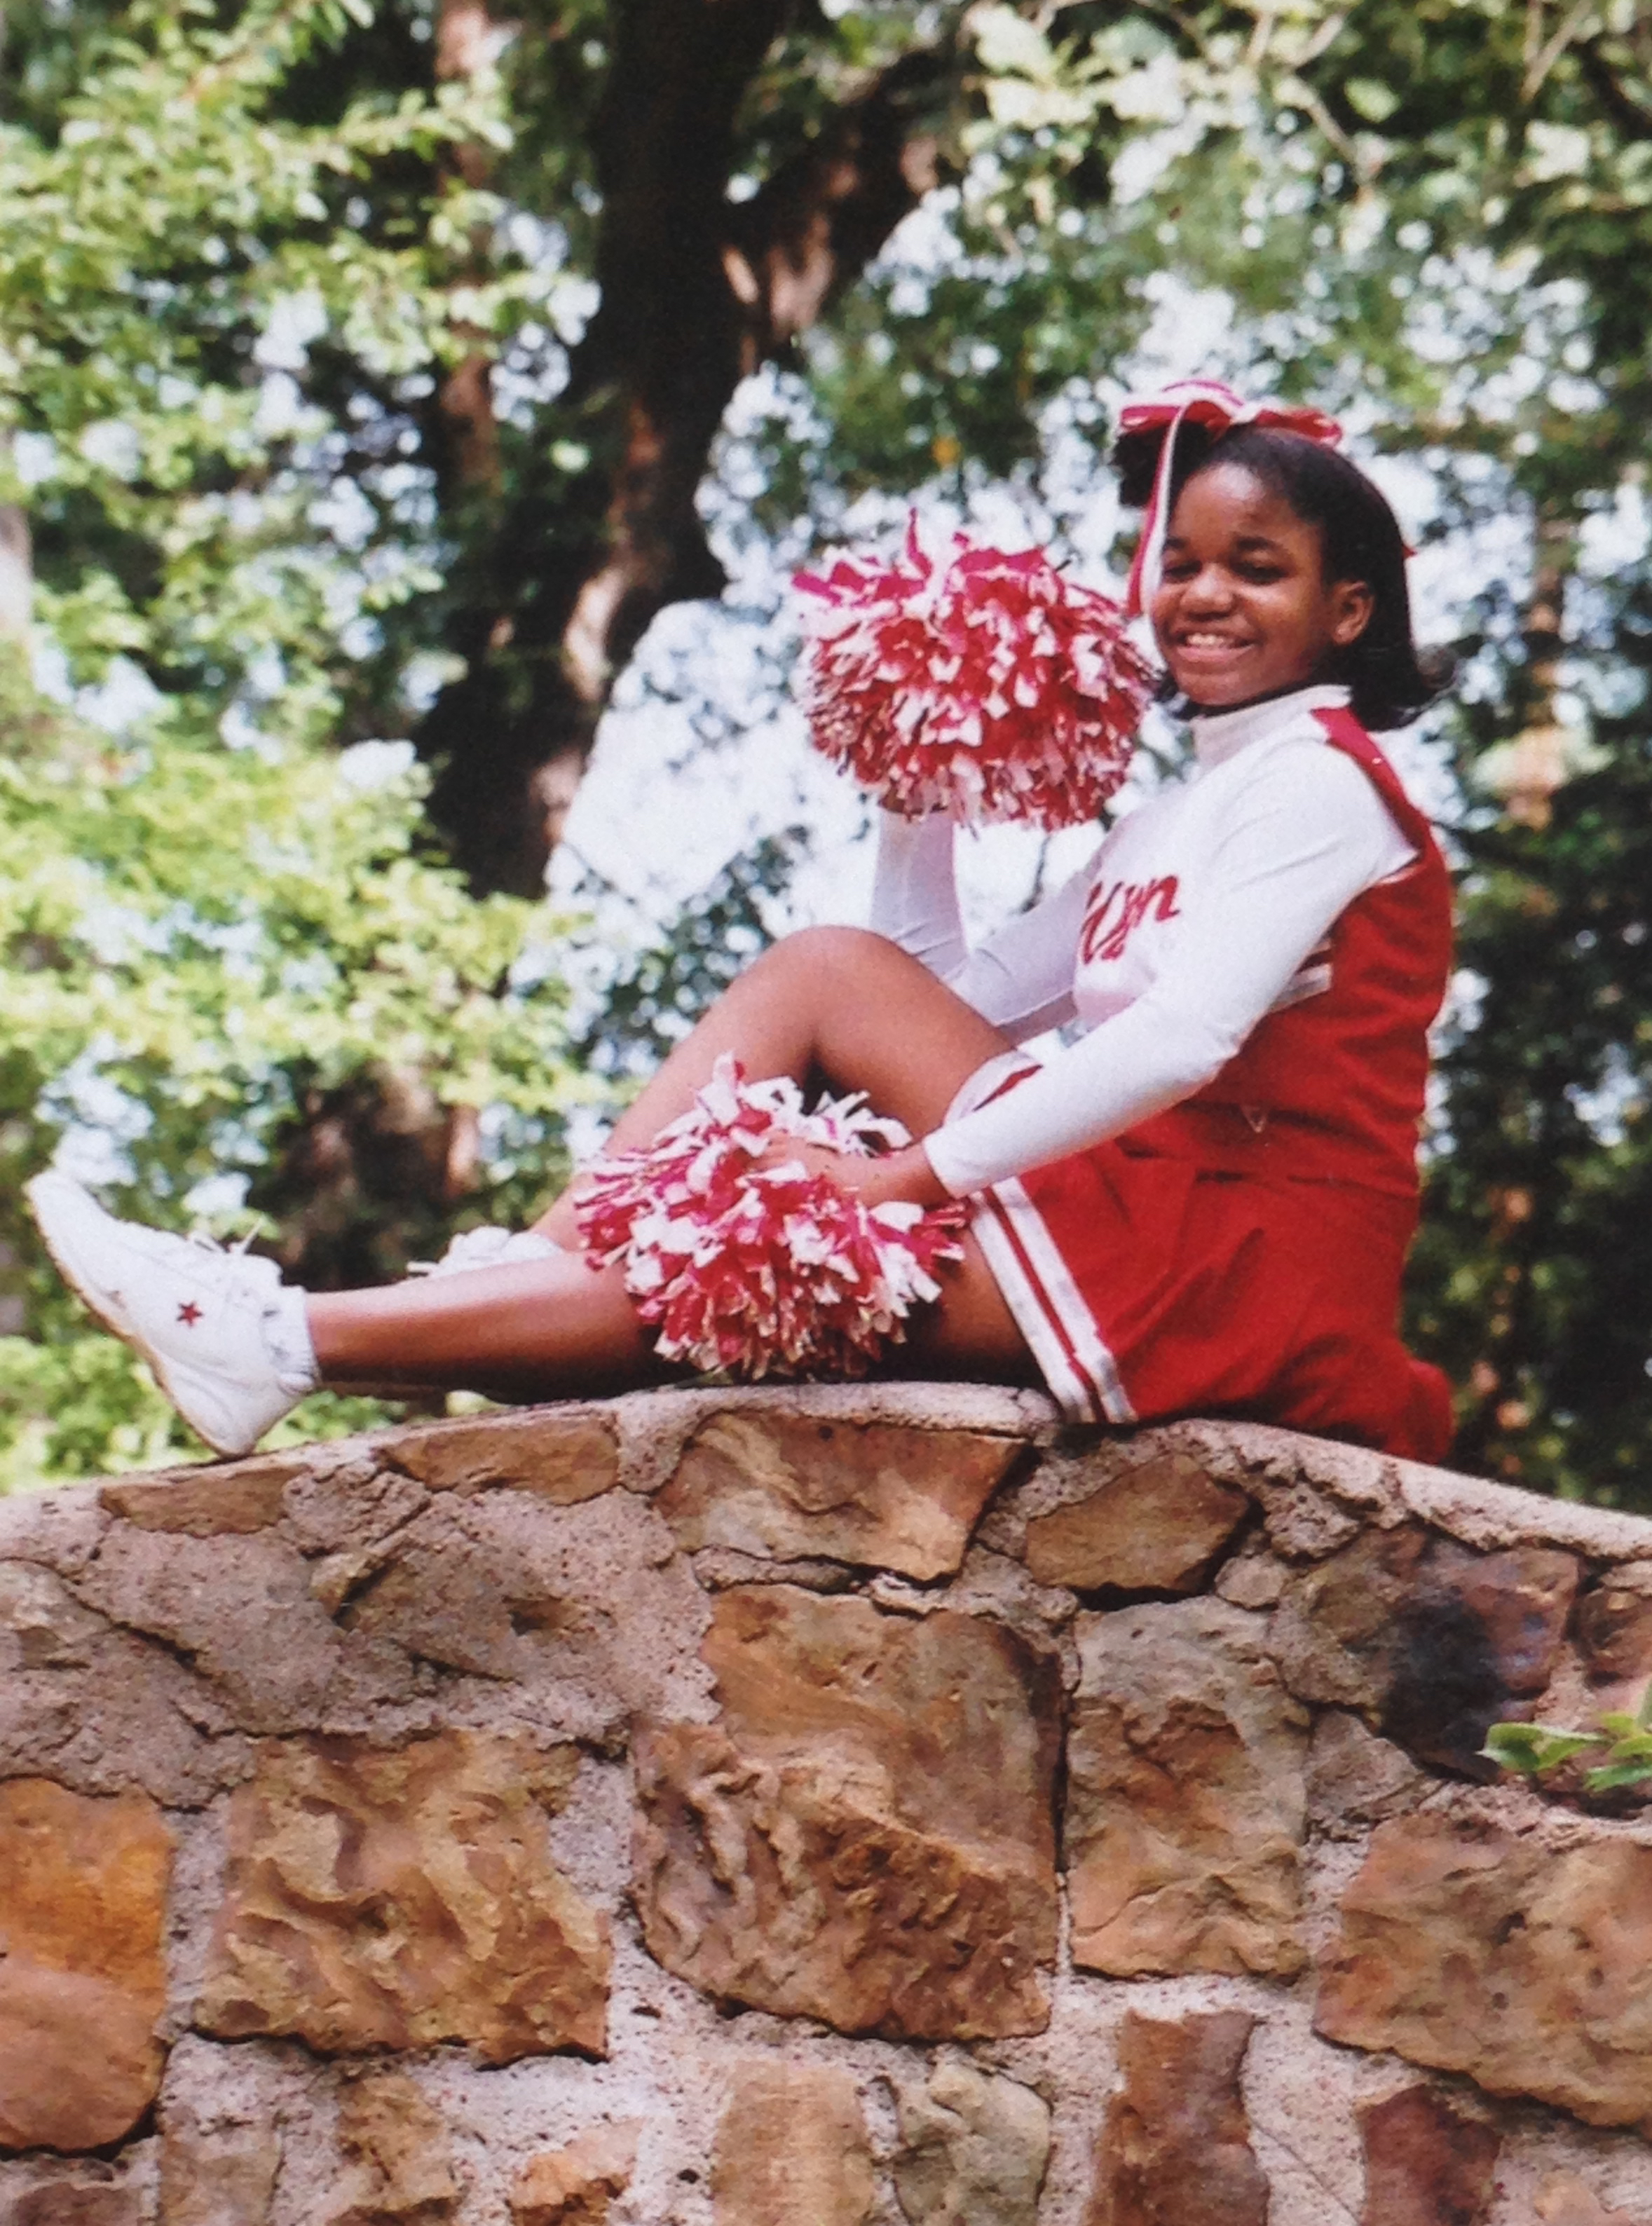 Wilson Cheerleader 2